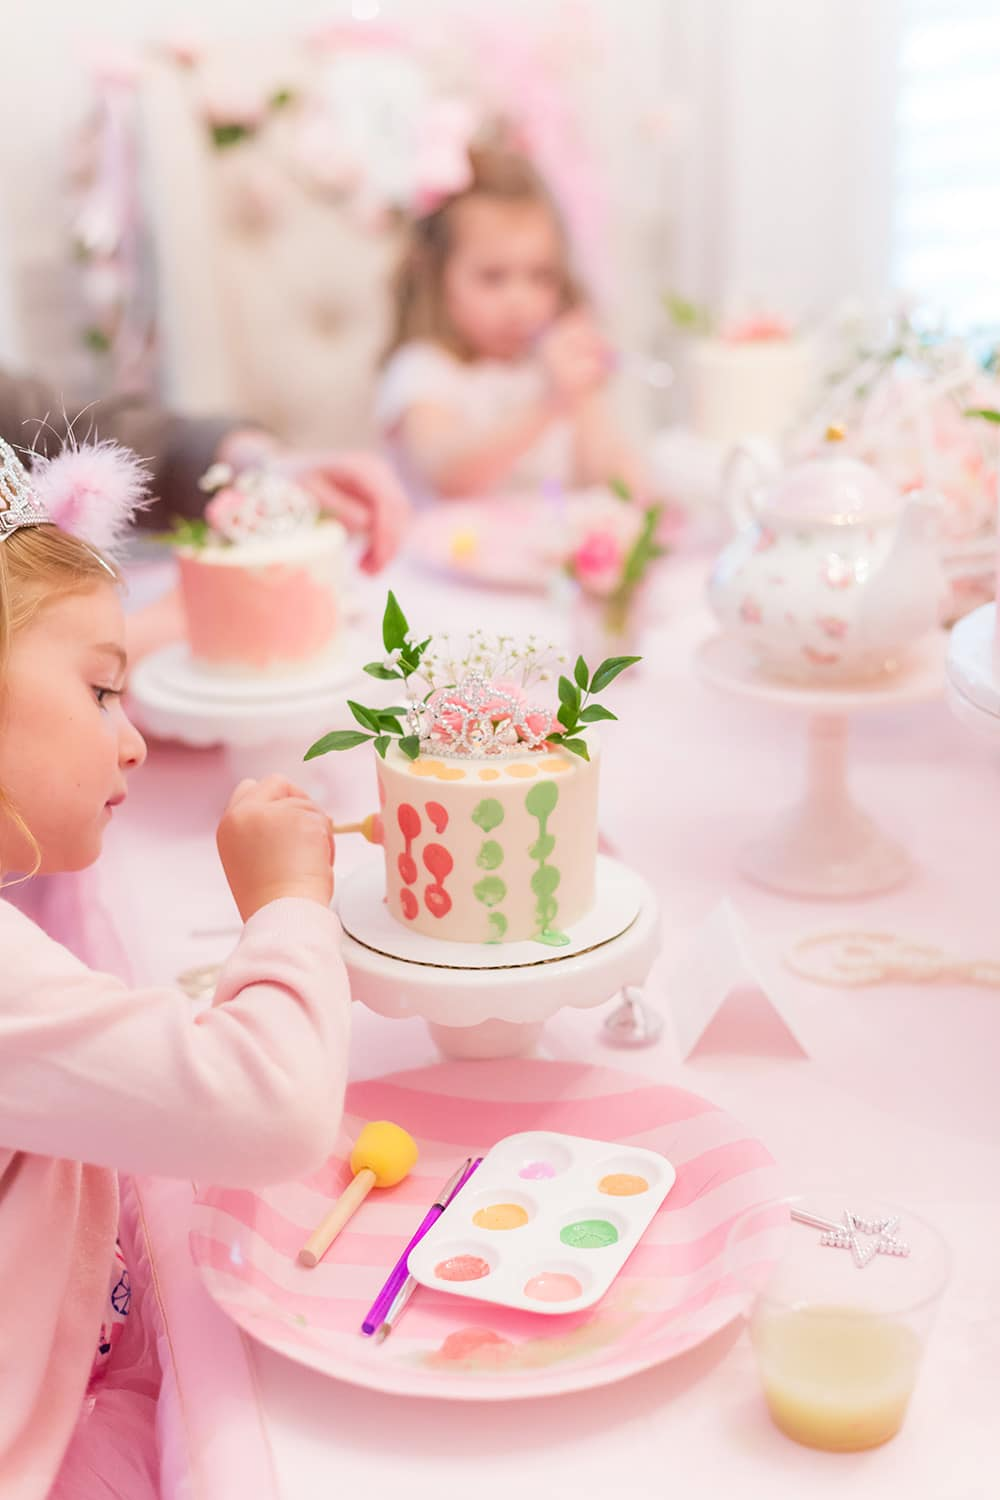 Cake Painting Tips and Tricks